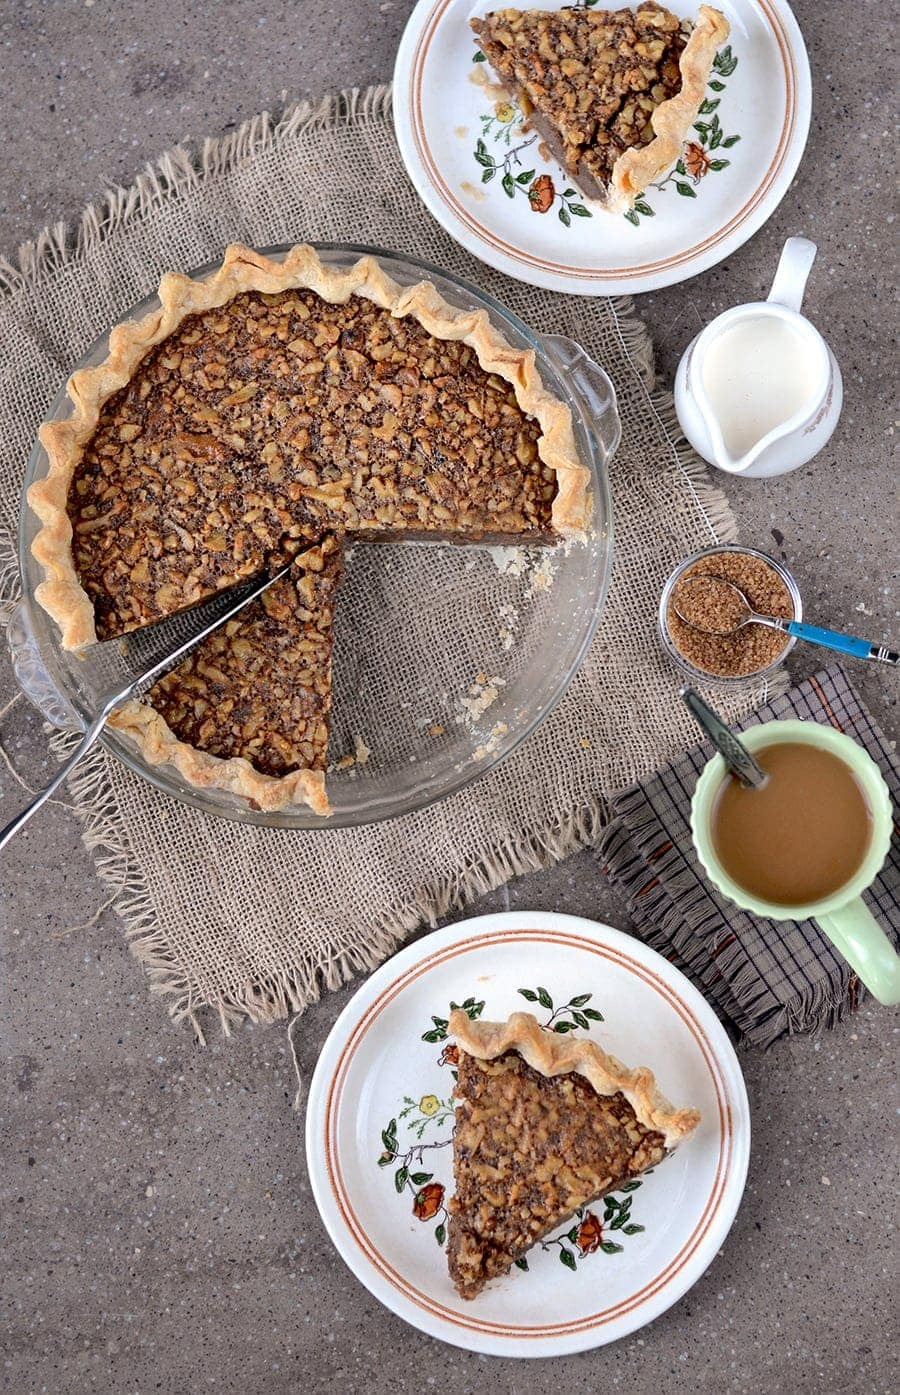 Cut Up Maple Walnut Pie Web - Maple Walnut Pie